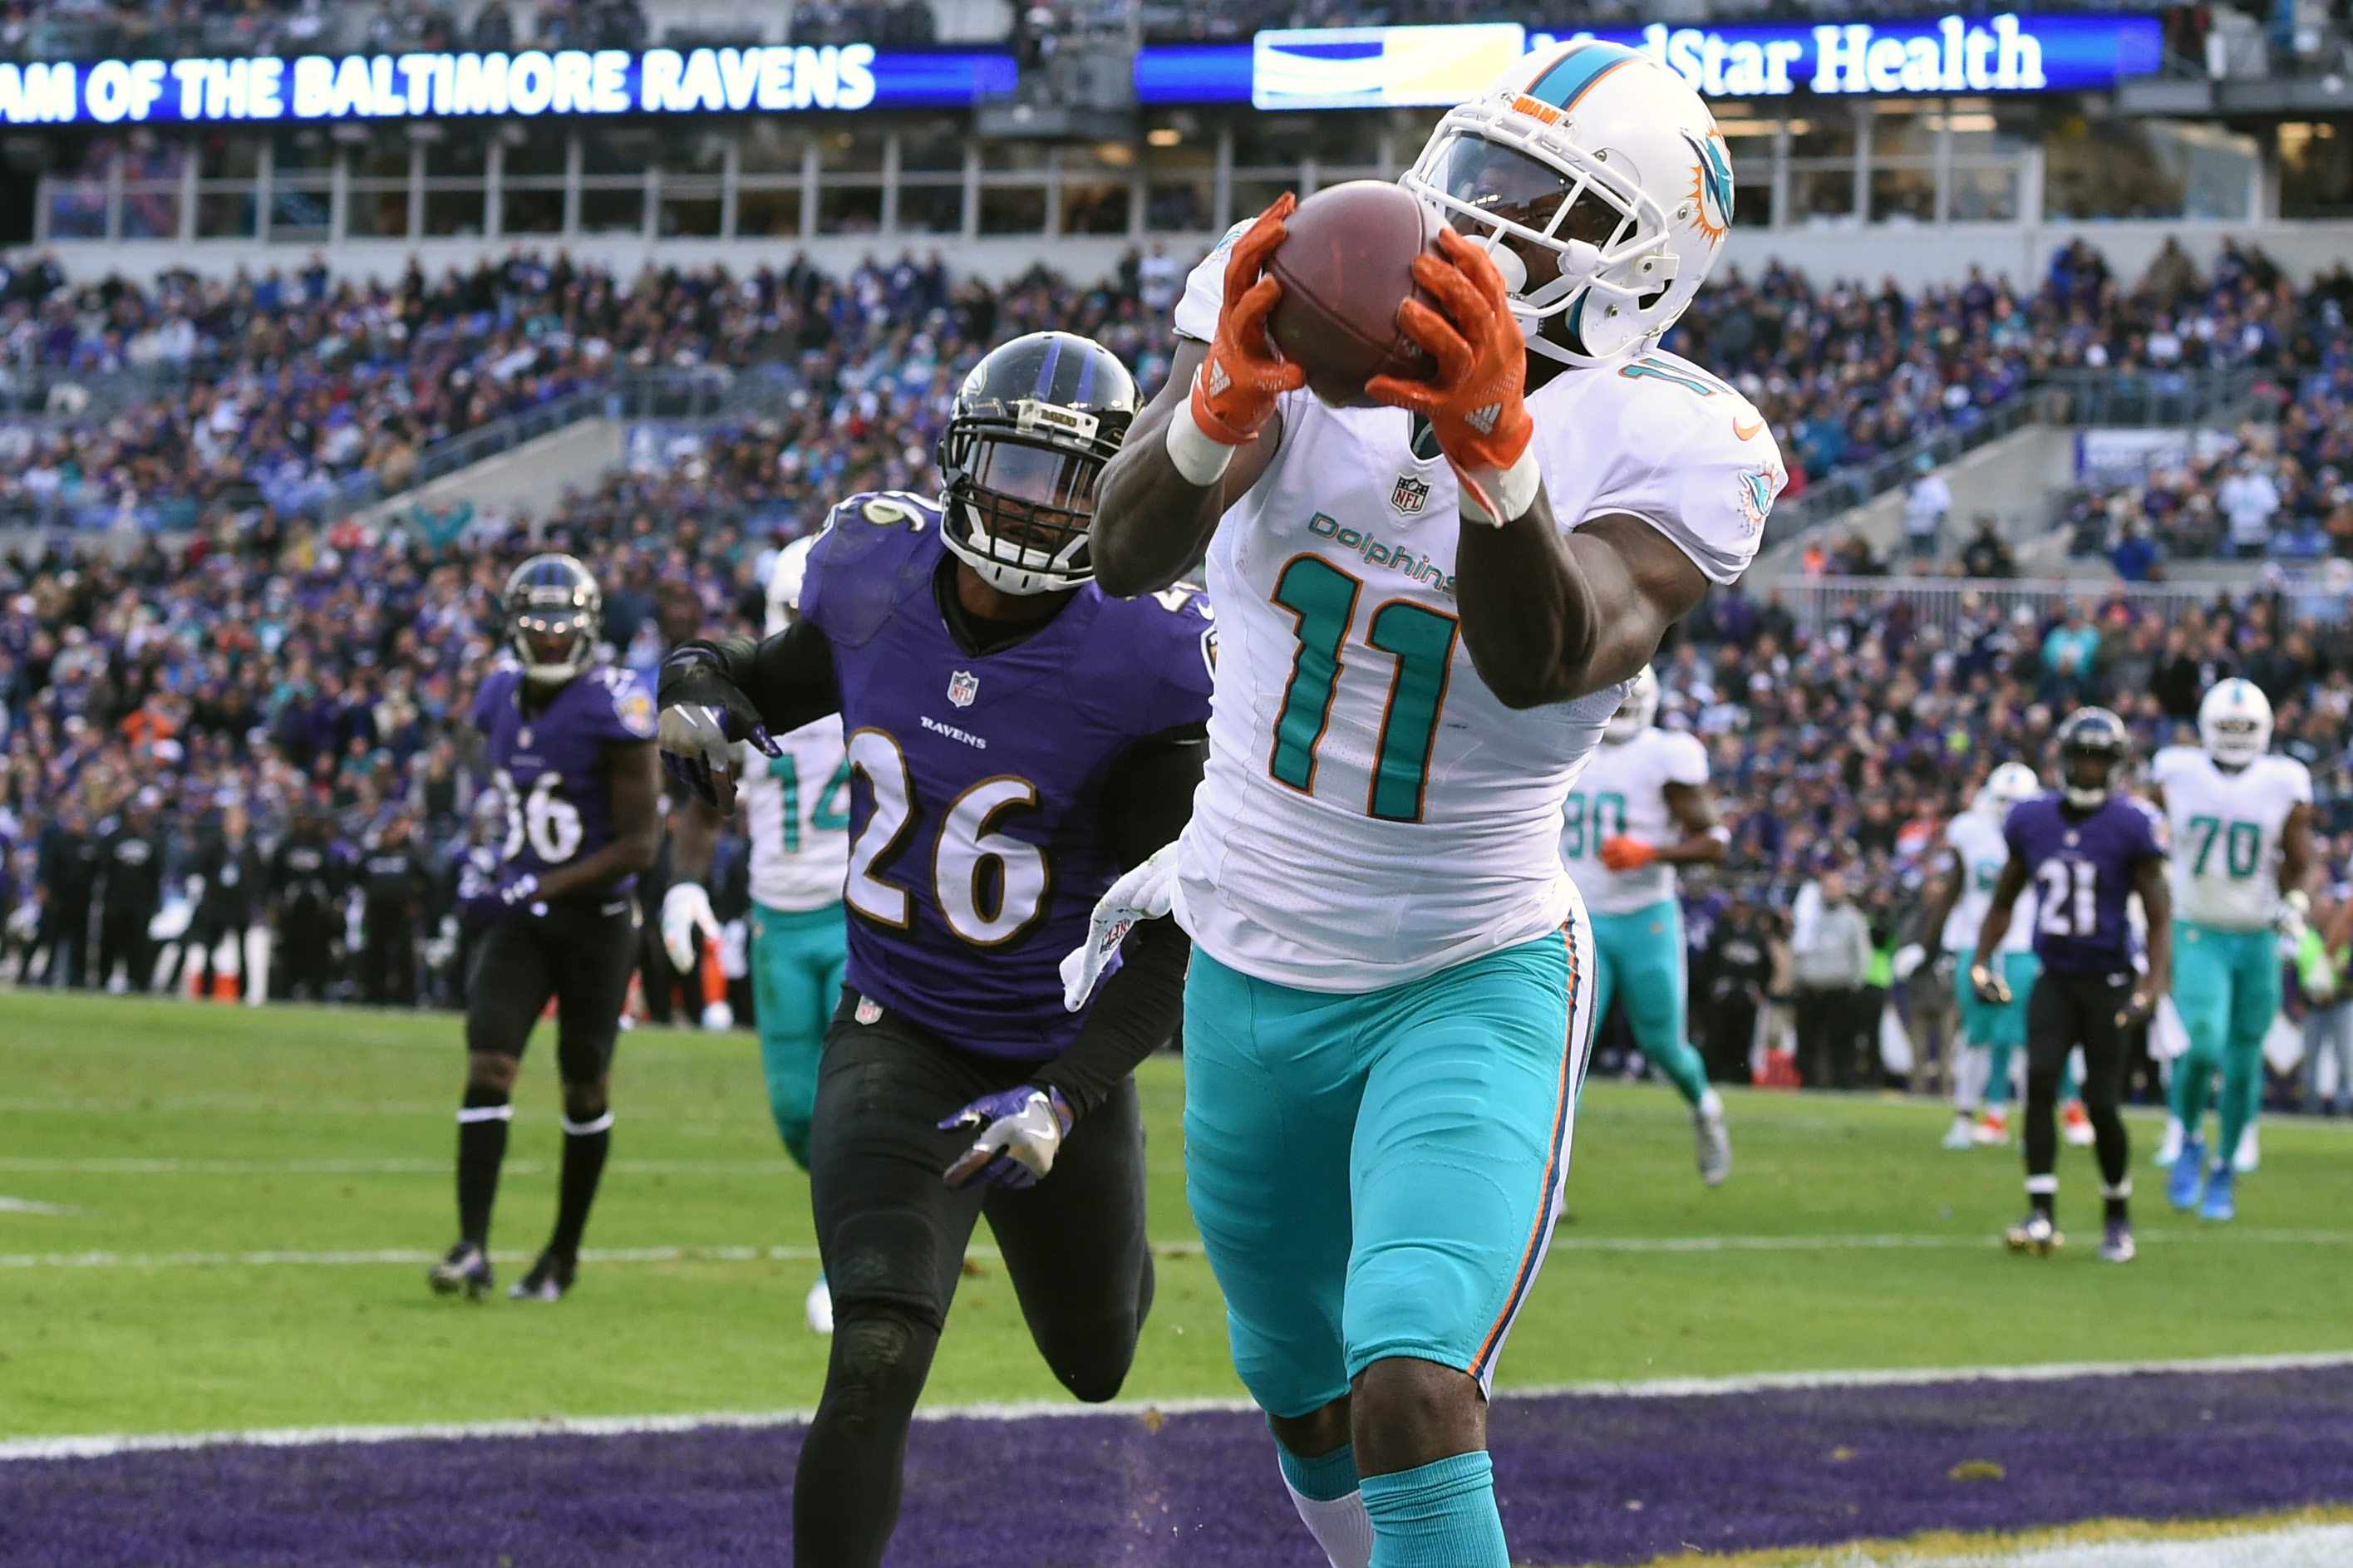 9724688-nfl-miami-dolphins-at-baltimore-